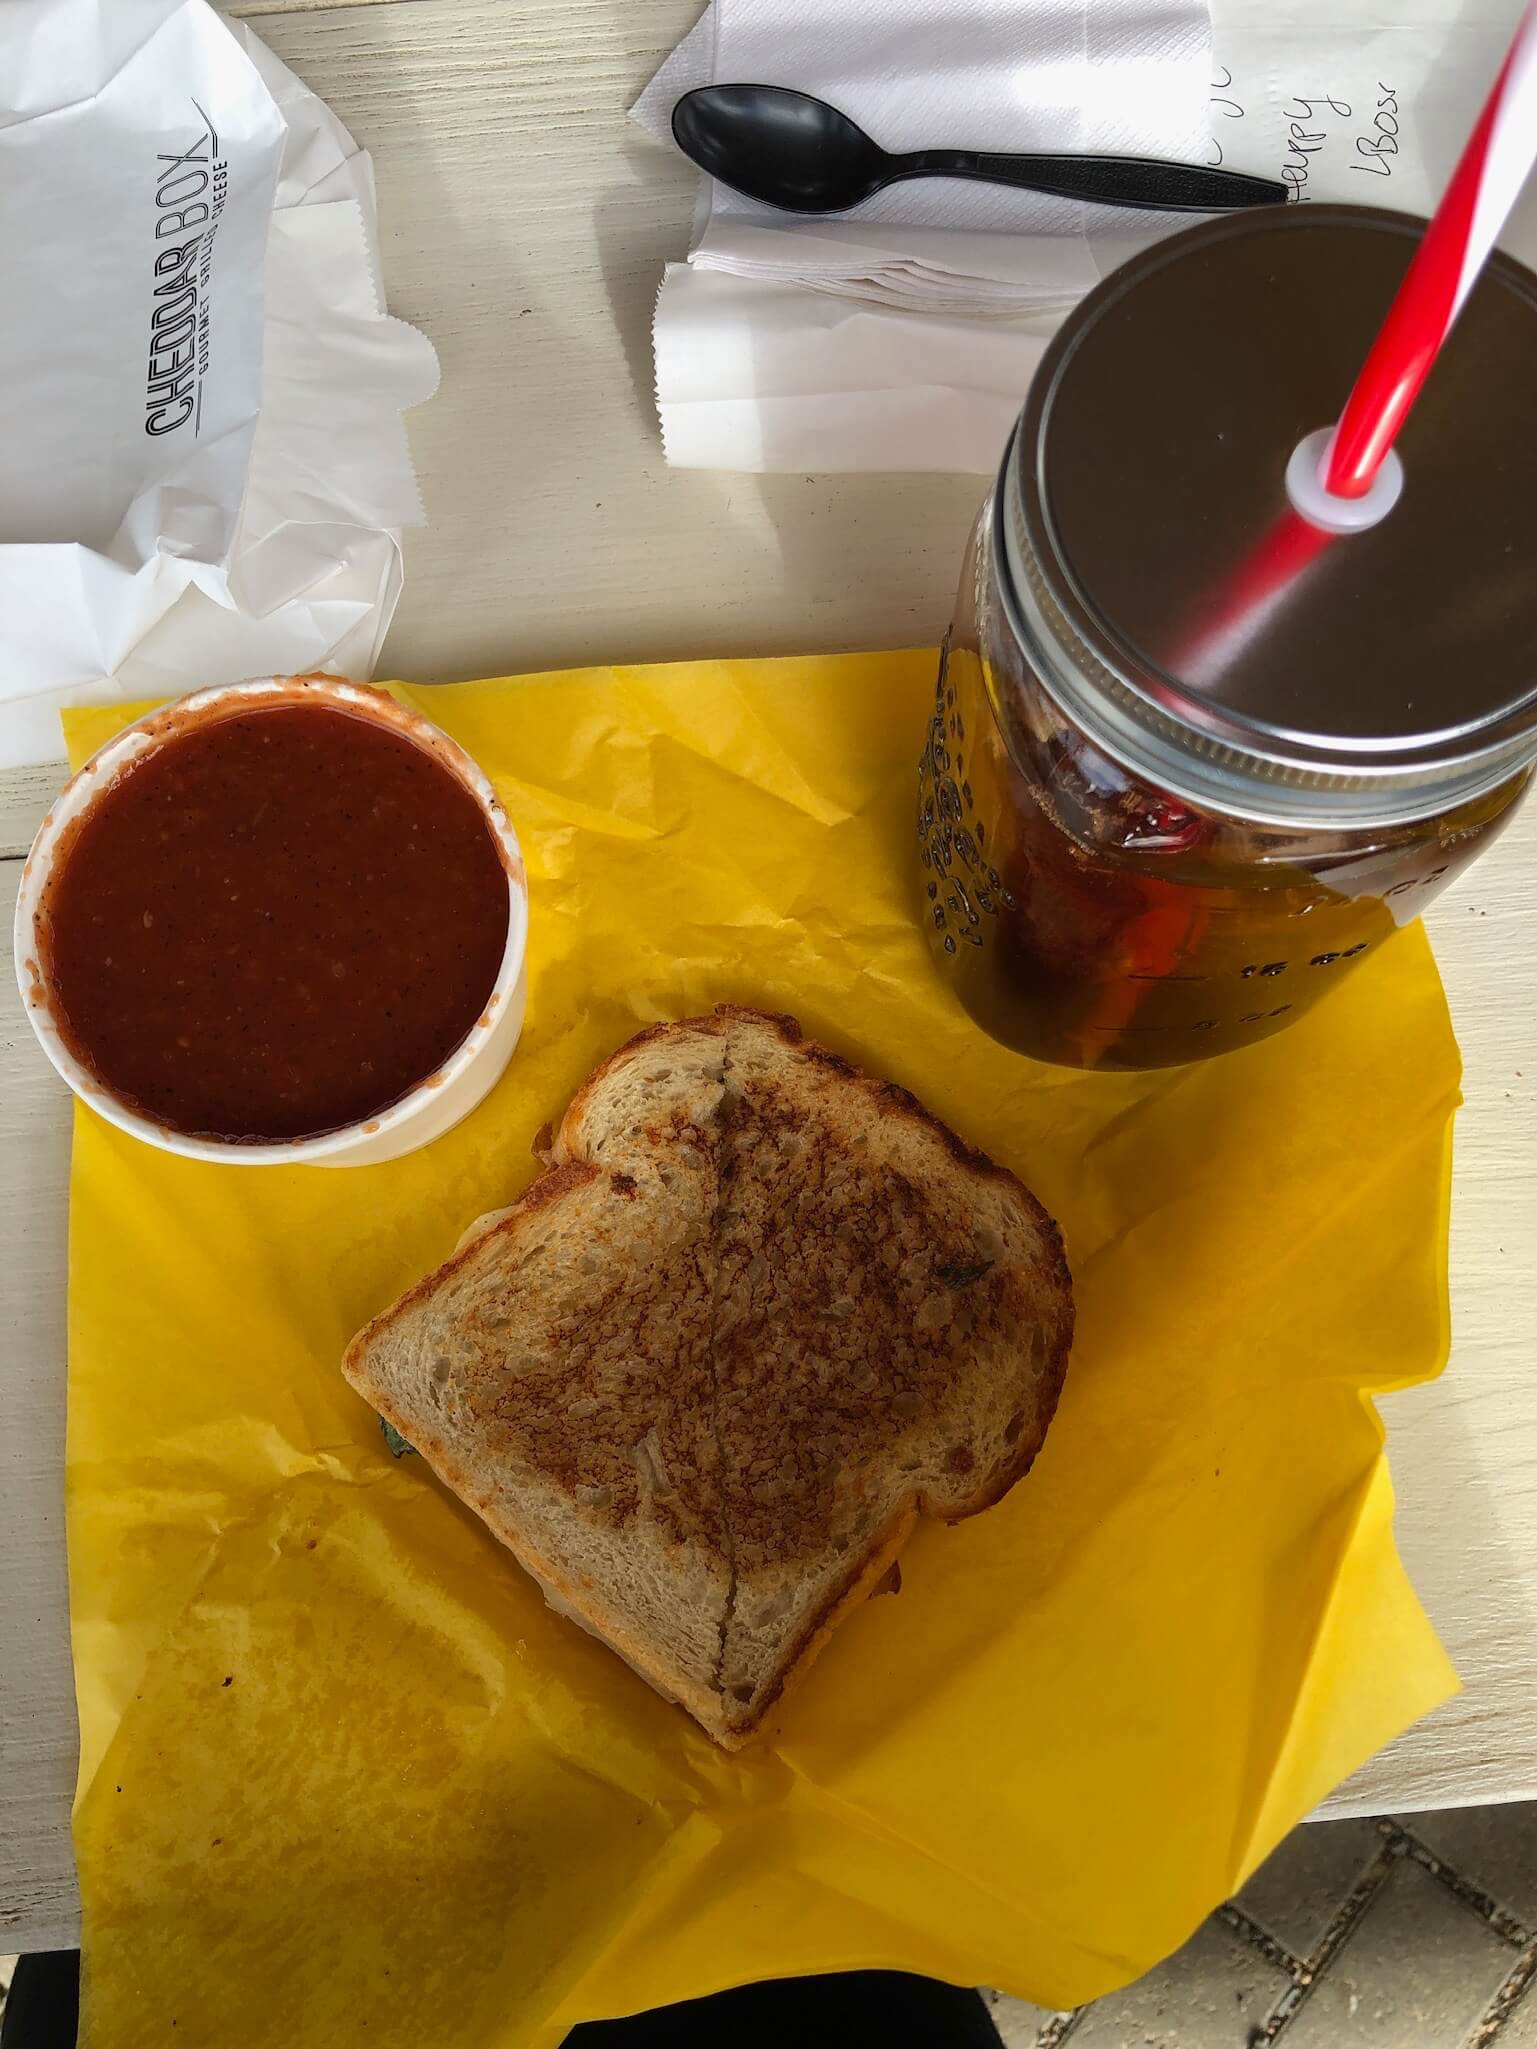 """- We ate at the Cheddar Box, where we all ordered grilled cheeses and tomato soup. As a grilled cheese LOVER, I really enjoyed my """"Boss"""" grilled cheese. The soup was a little chunky for me, but was still perfect for dipping my sandwich into."""